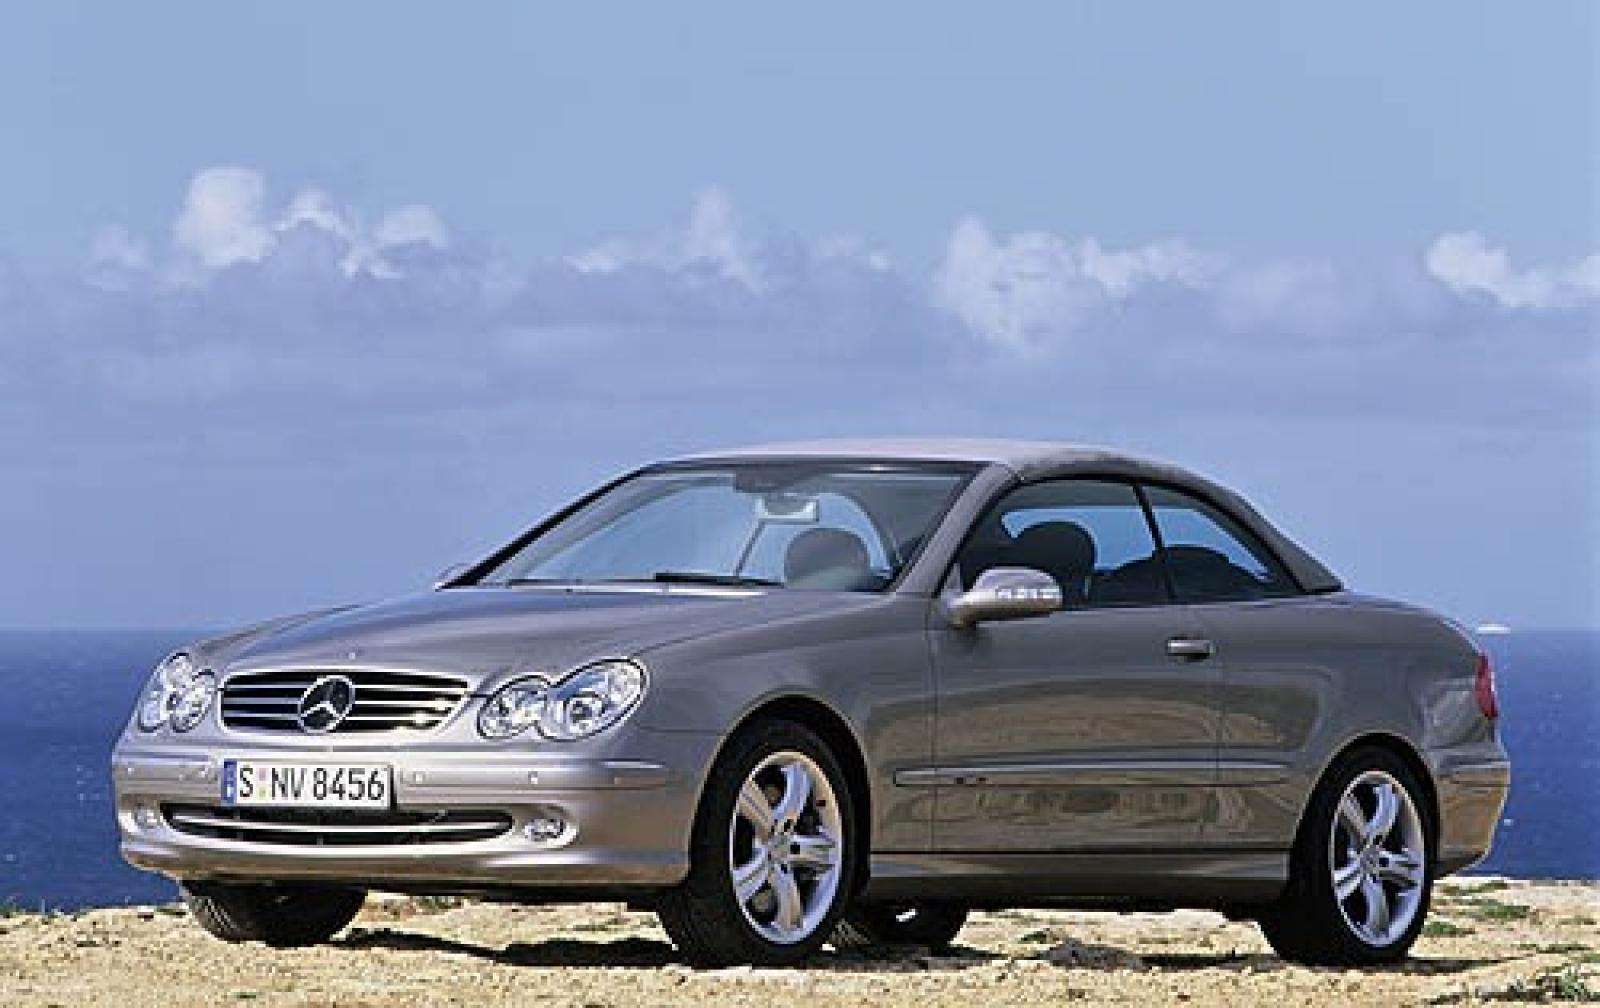 2006 mercedes benz clk class information and photos for Mercedes benz clk 500